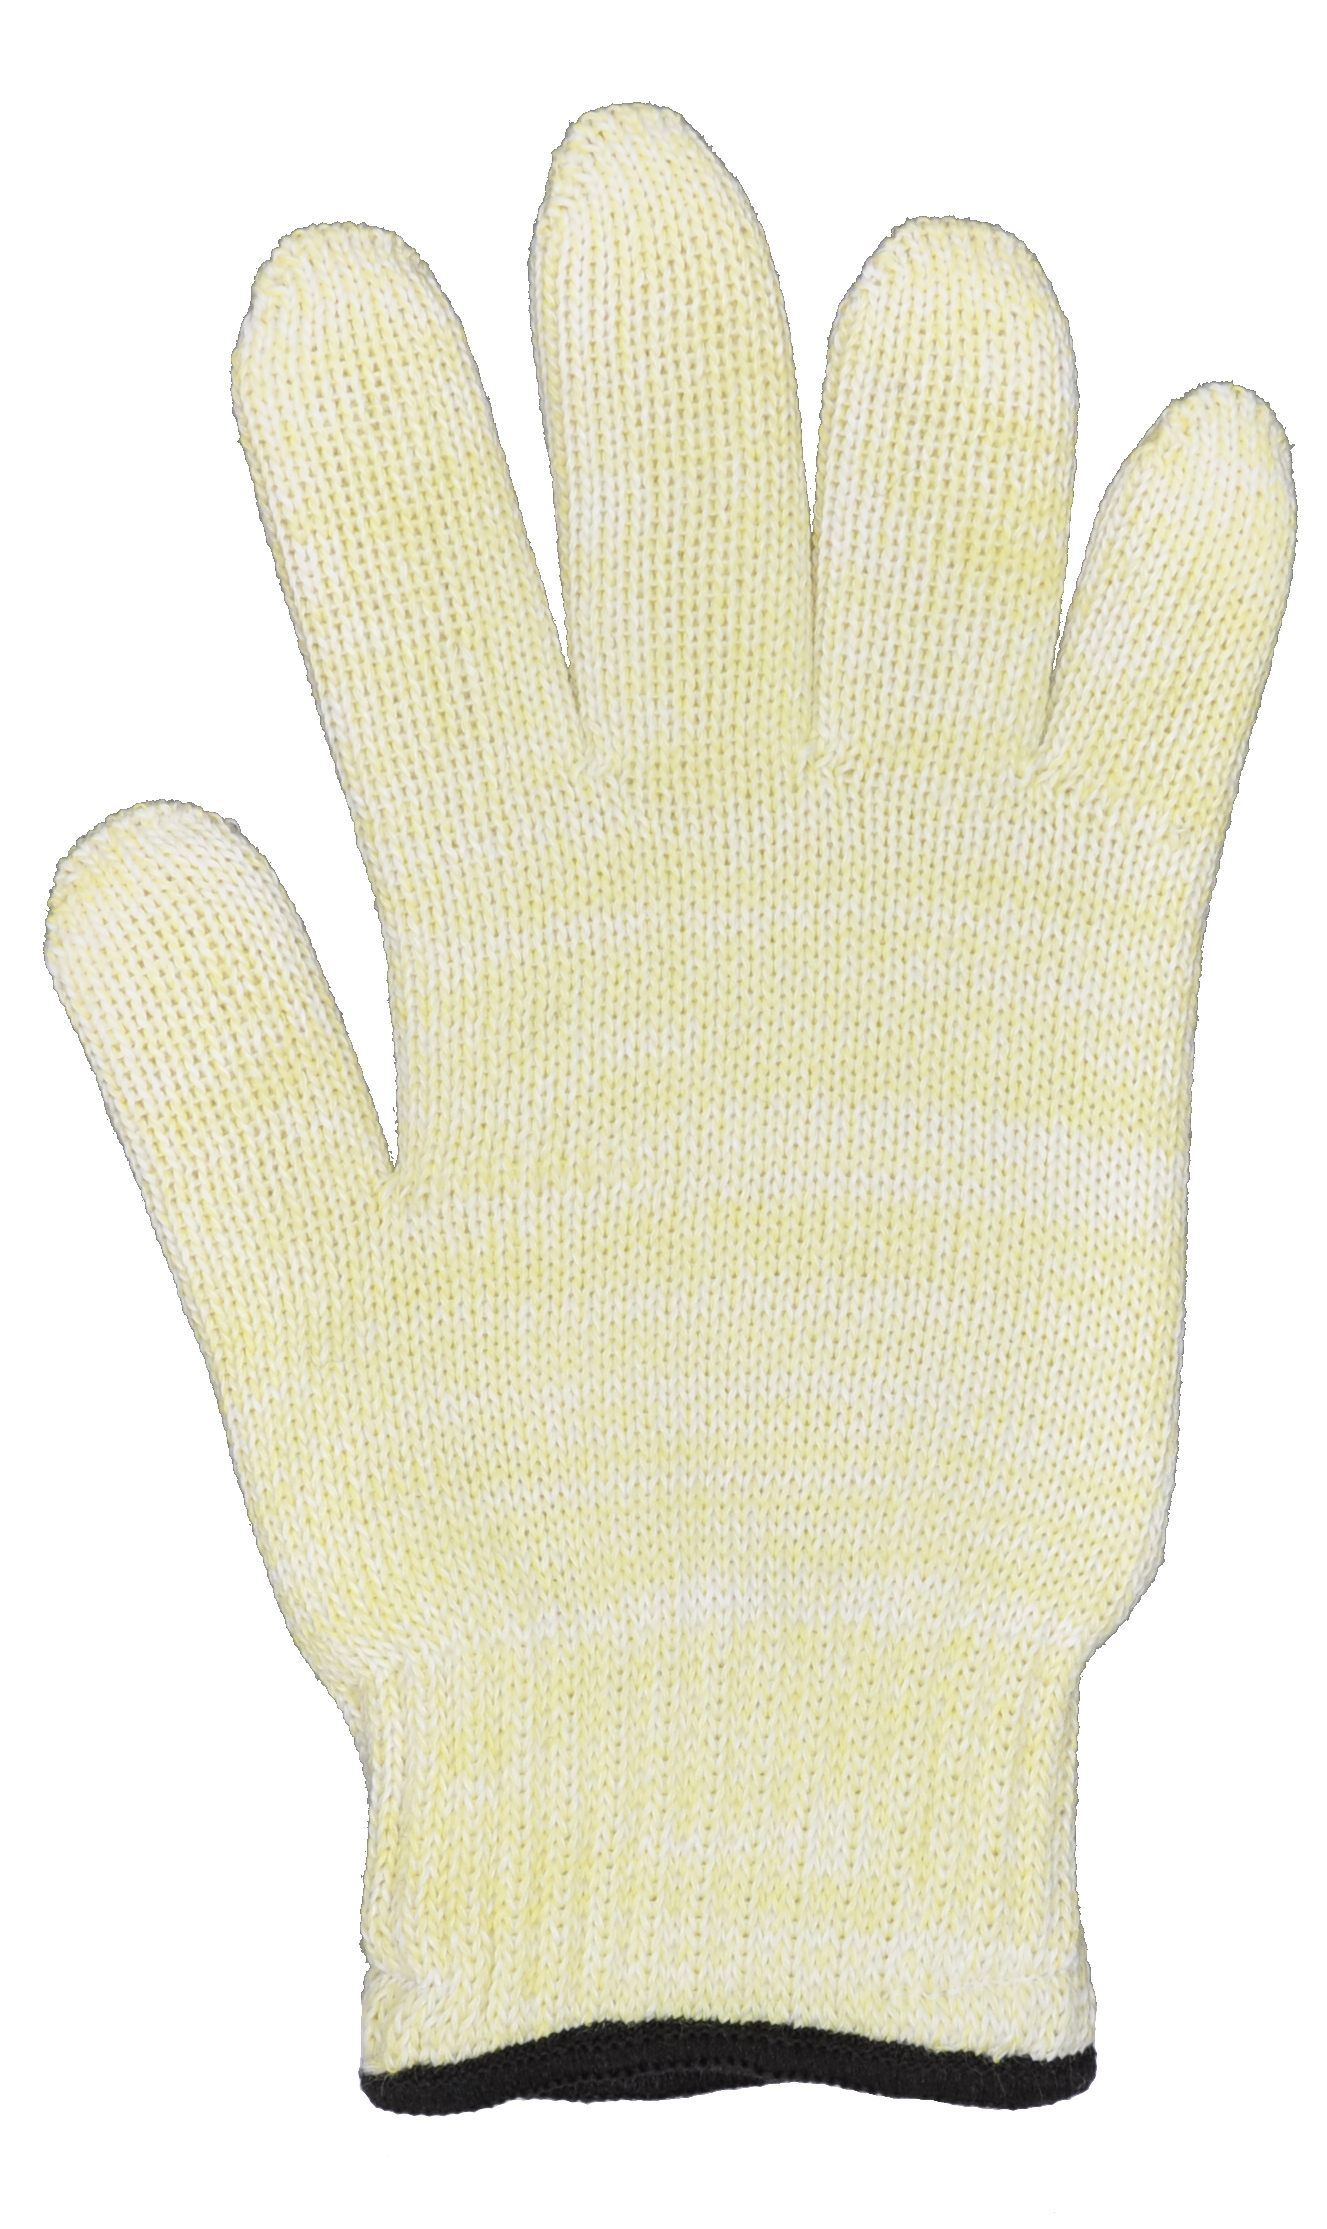 Eurow & O'Reilly Corp. Flame Resistant Oven Glove Commercial Grade at Sears.com